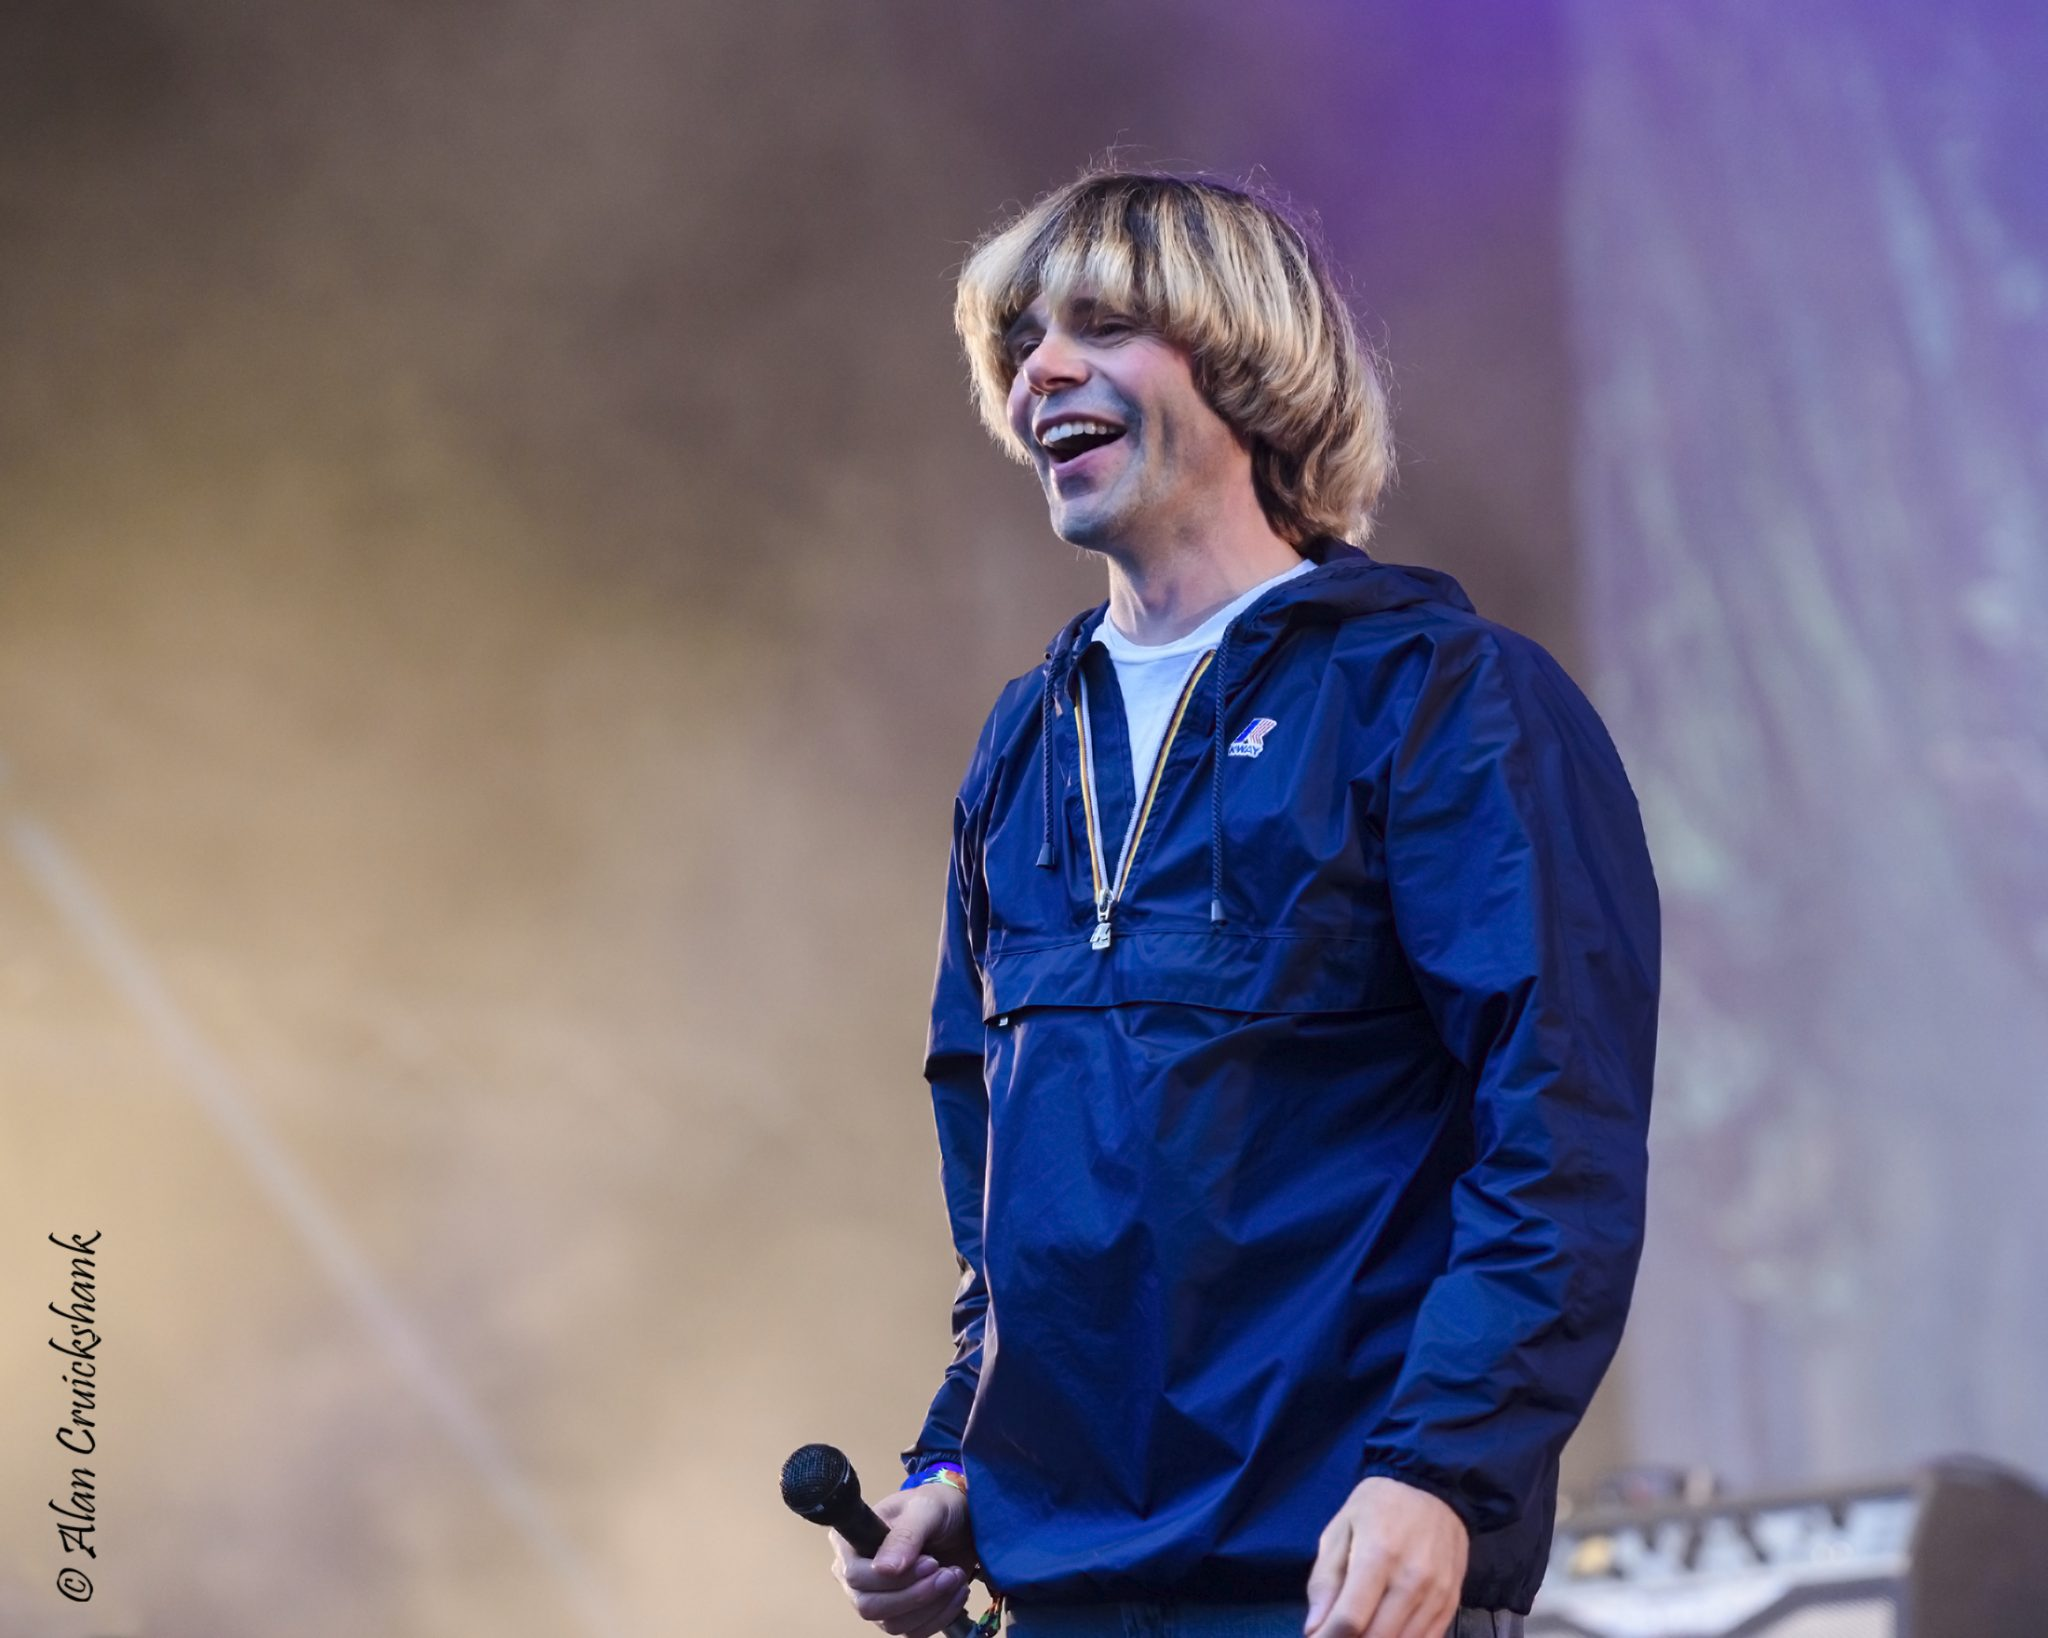 dM3A4 - The Charlatans, Friday Belladrum 2018 - IMAGES